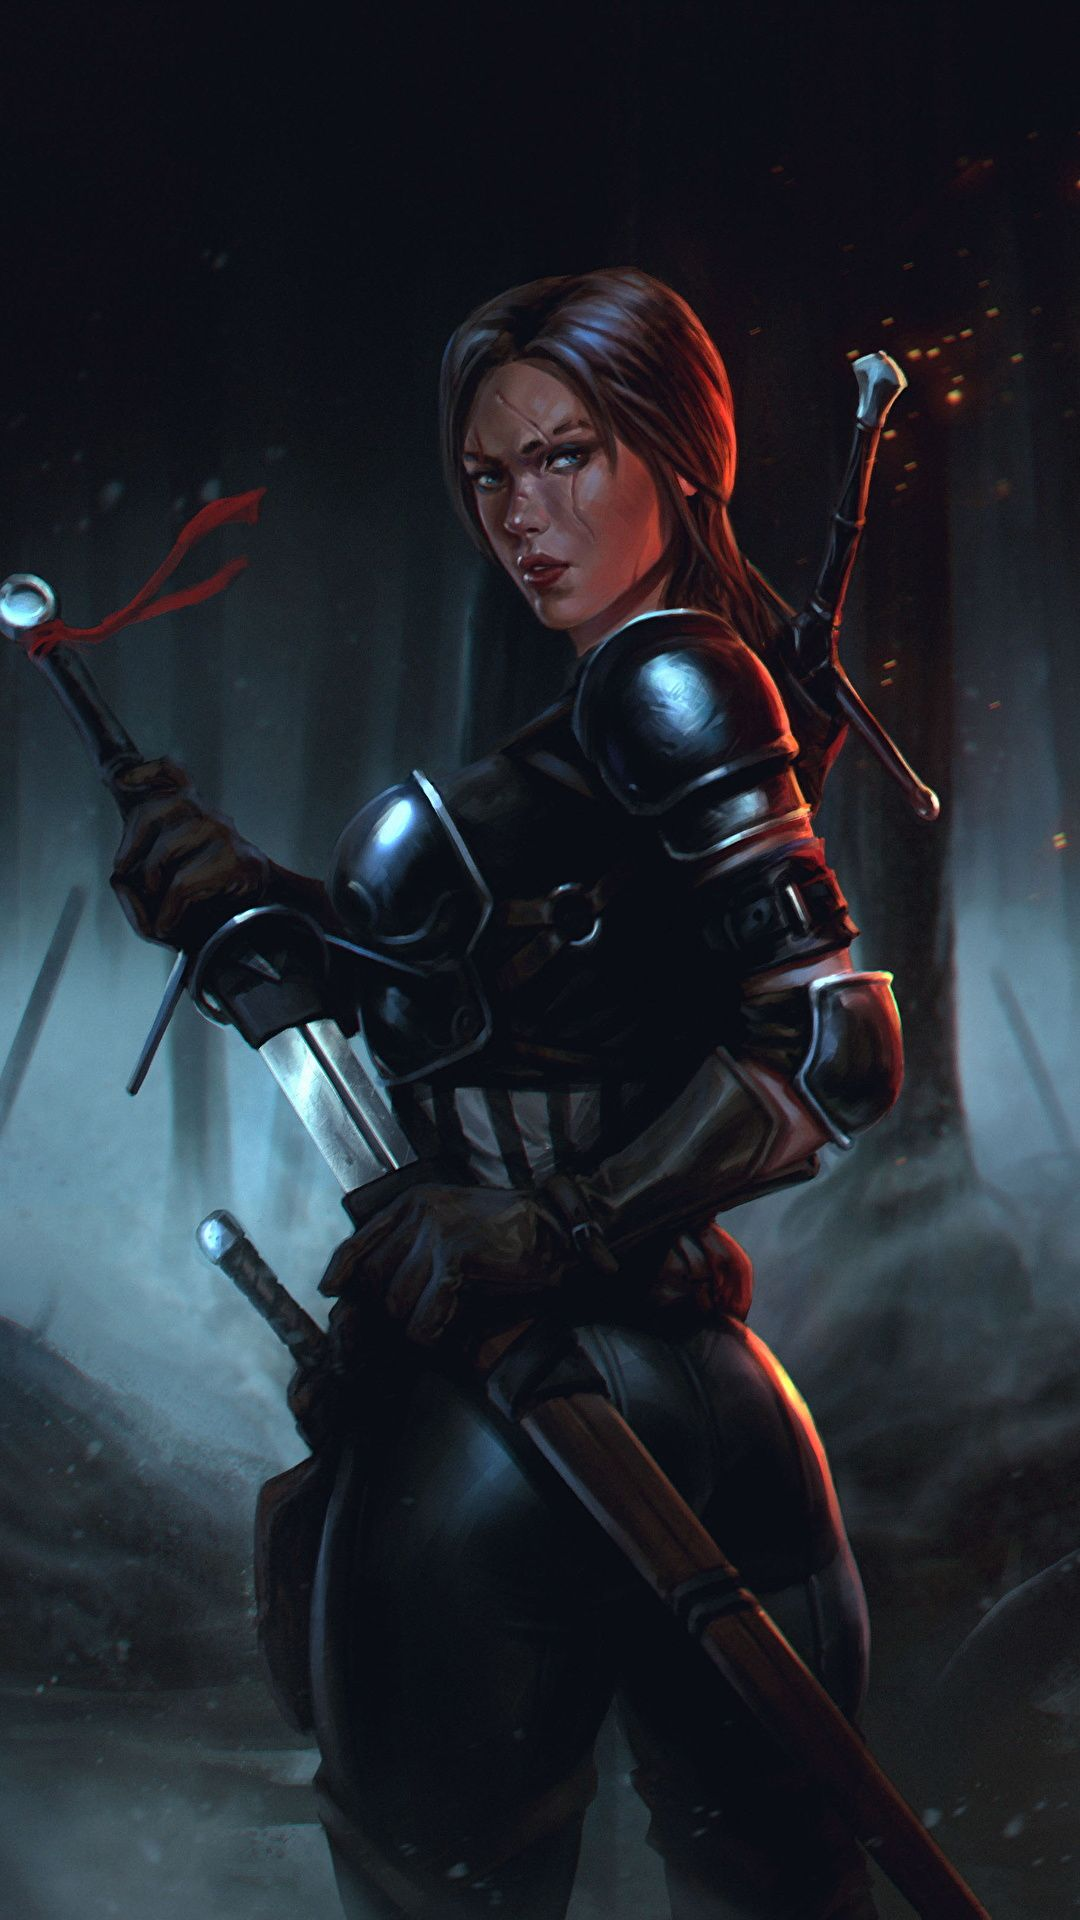 The Witcher 3 Background Hd » Hupages » Download Iphone